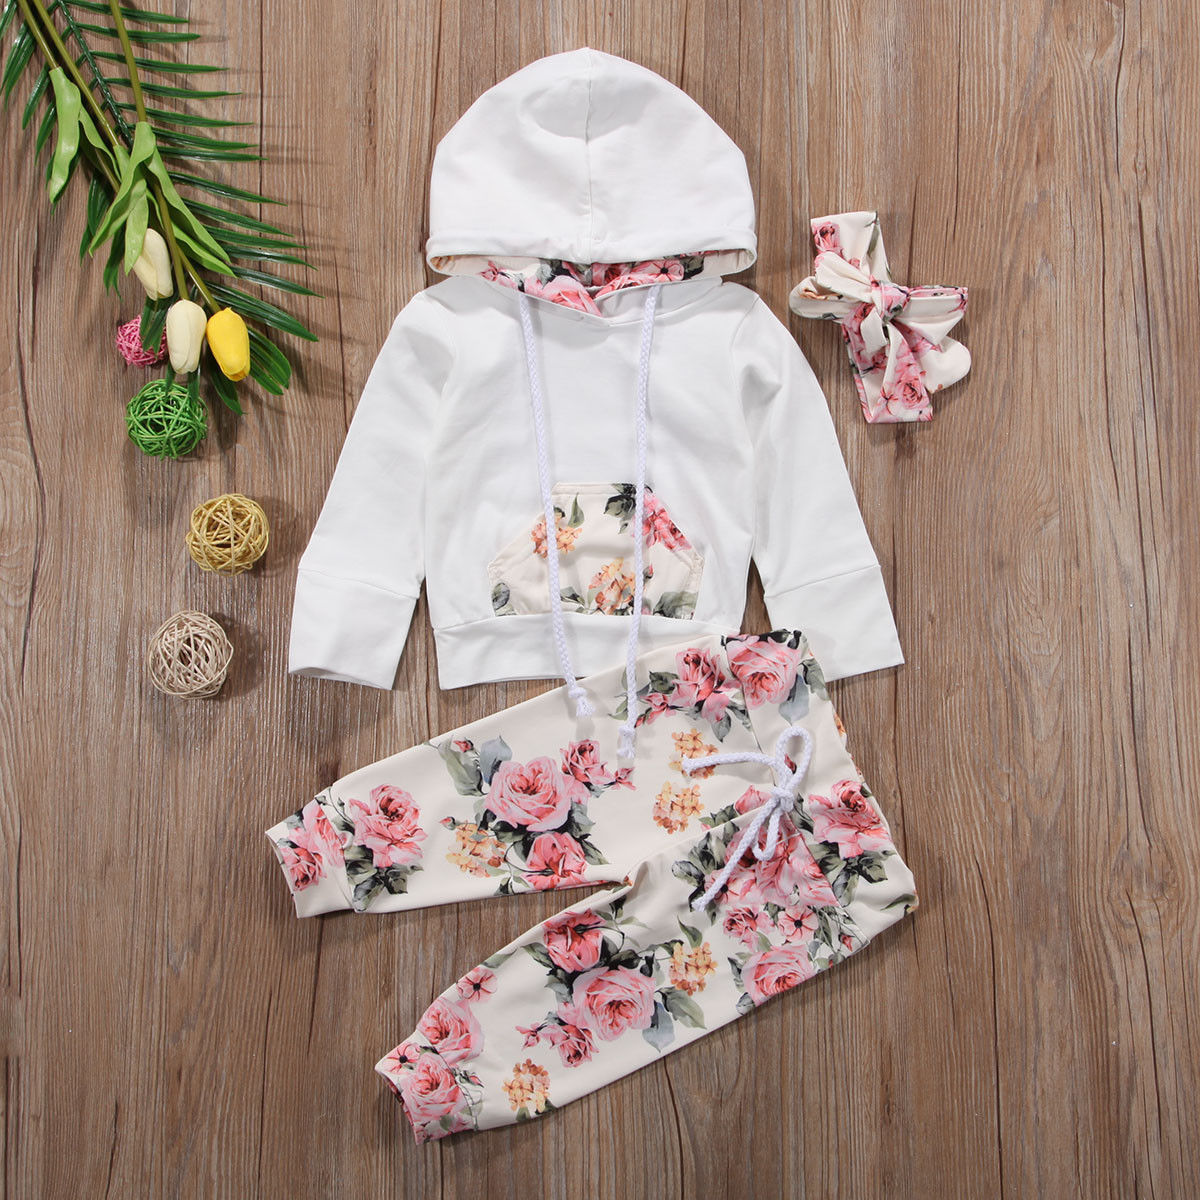 Autumn Winter Newborn Kid Warm Cotton 2pcs Clothes Set Baby Girl Suits Toddler Hooded Tops Shirt+Long Pants Outfits Tracksuit